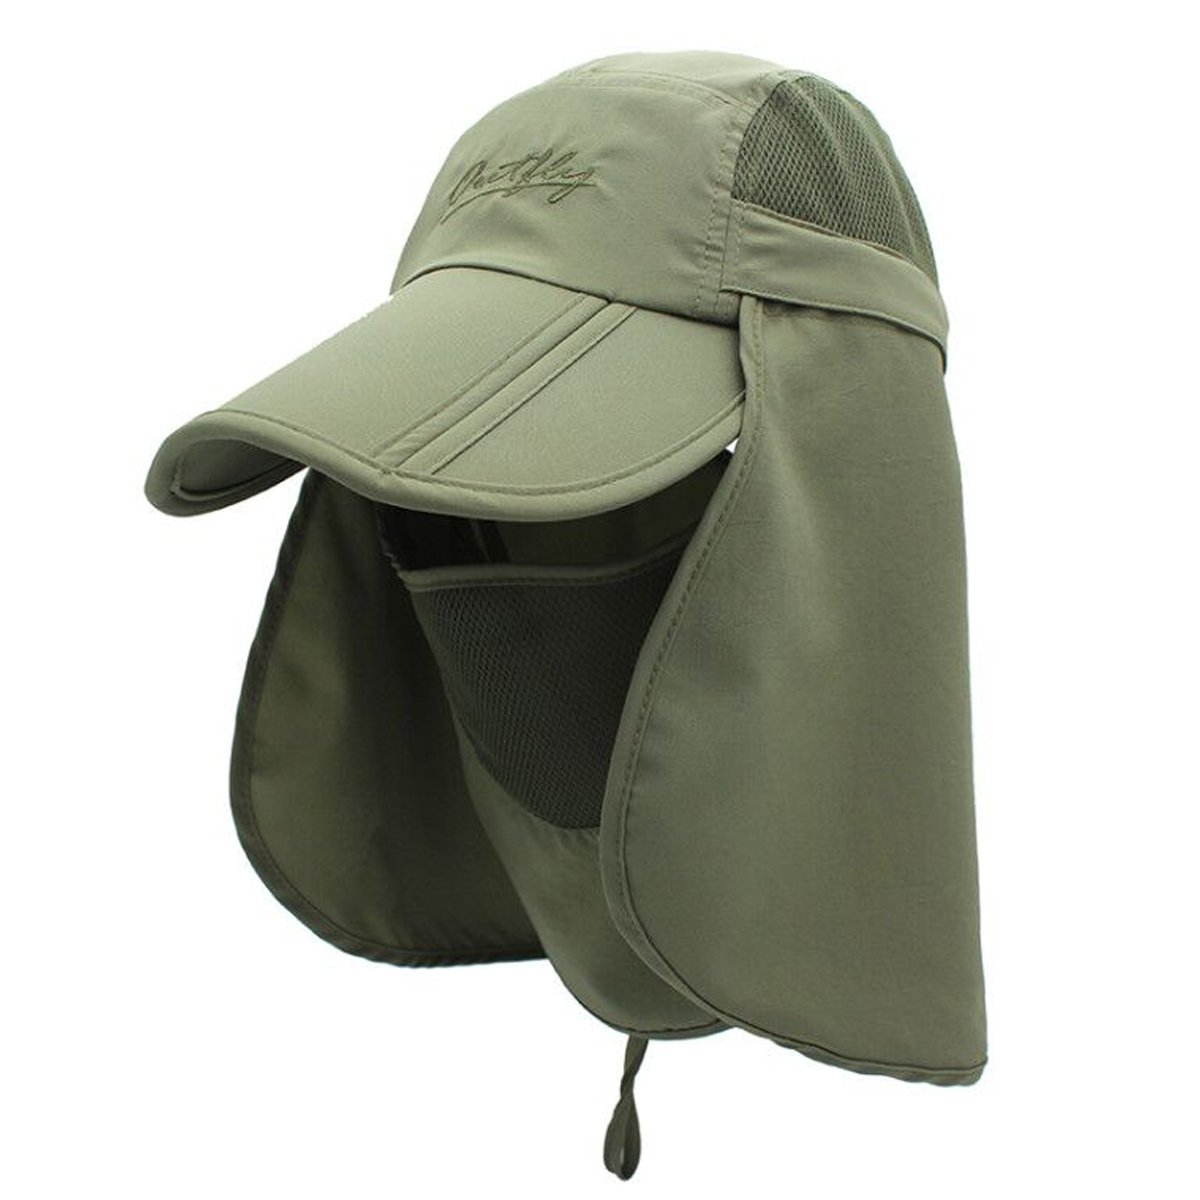 4638e02e6df4f Surblue Quick-Drying Outdoor Cap UV Protection Sun Hats Fishing Hat Neck  Face Flap Hat UPF50+ Army Green at Amazon Men s Clothing store